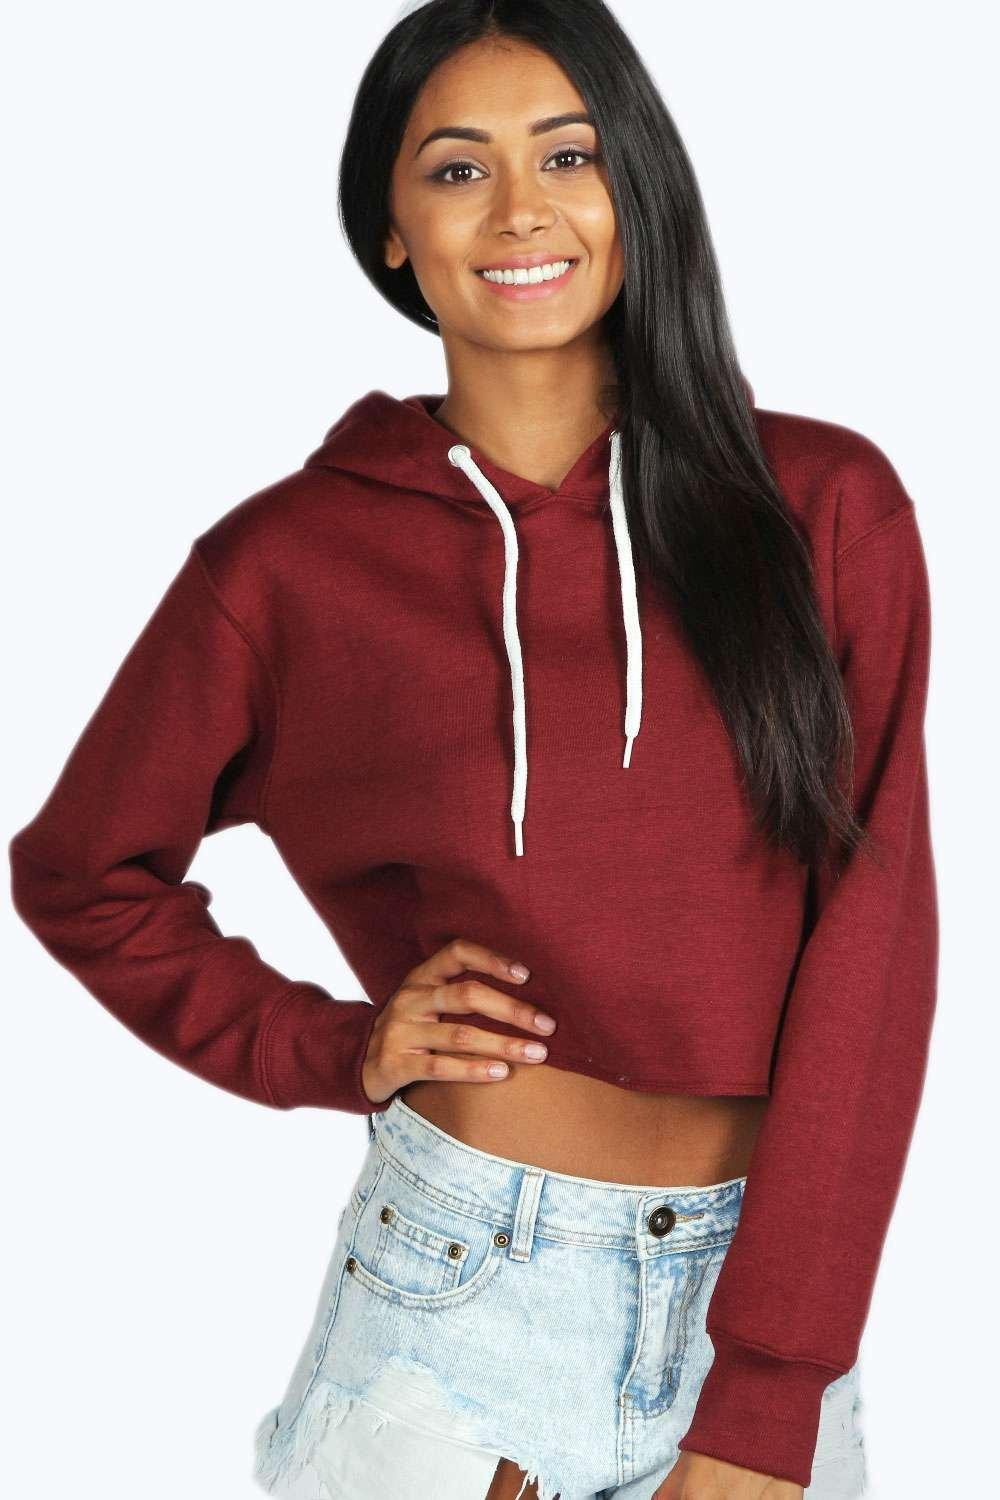 The Don't Ask Why Crop Hoodie brings the street style hoodie to the cropped sweatshirt style in the brand's unique way. The top has a hooded silhouette with a cropped fit and is made from an interlock knit using viscose and elastane. This means it is velvety, has a drapey style and plenty of stretch to ensure it is always comfortable.